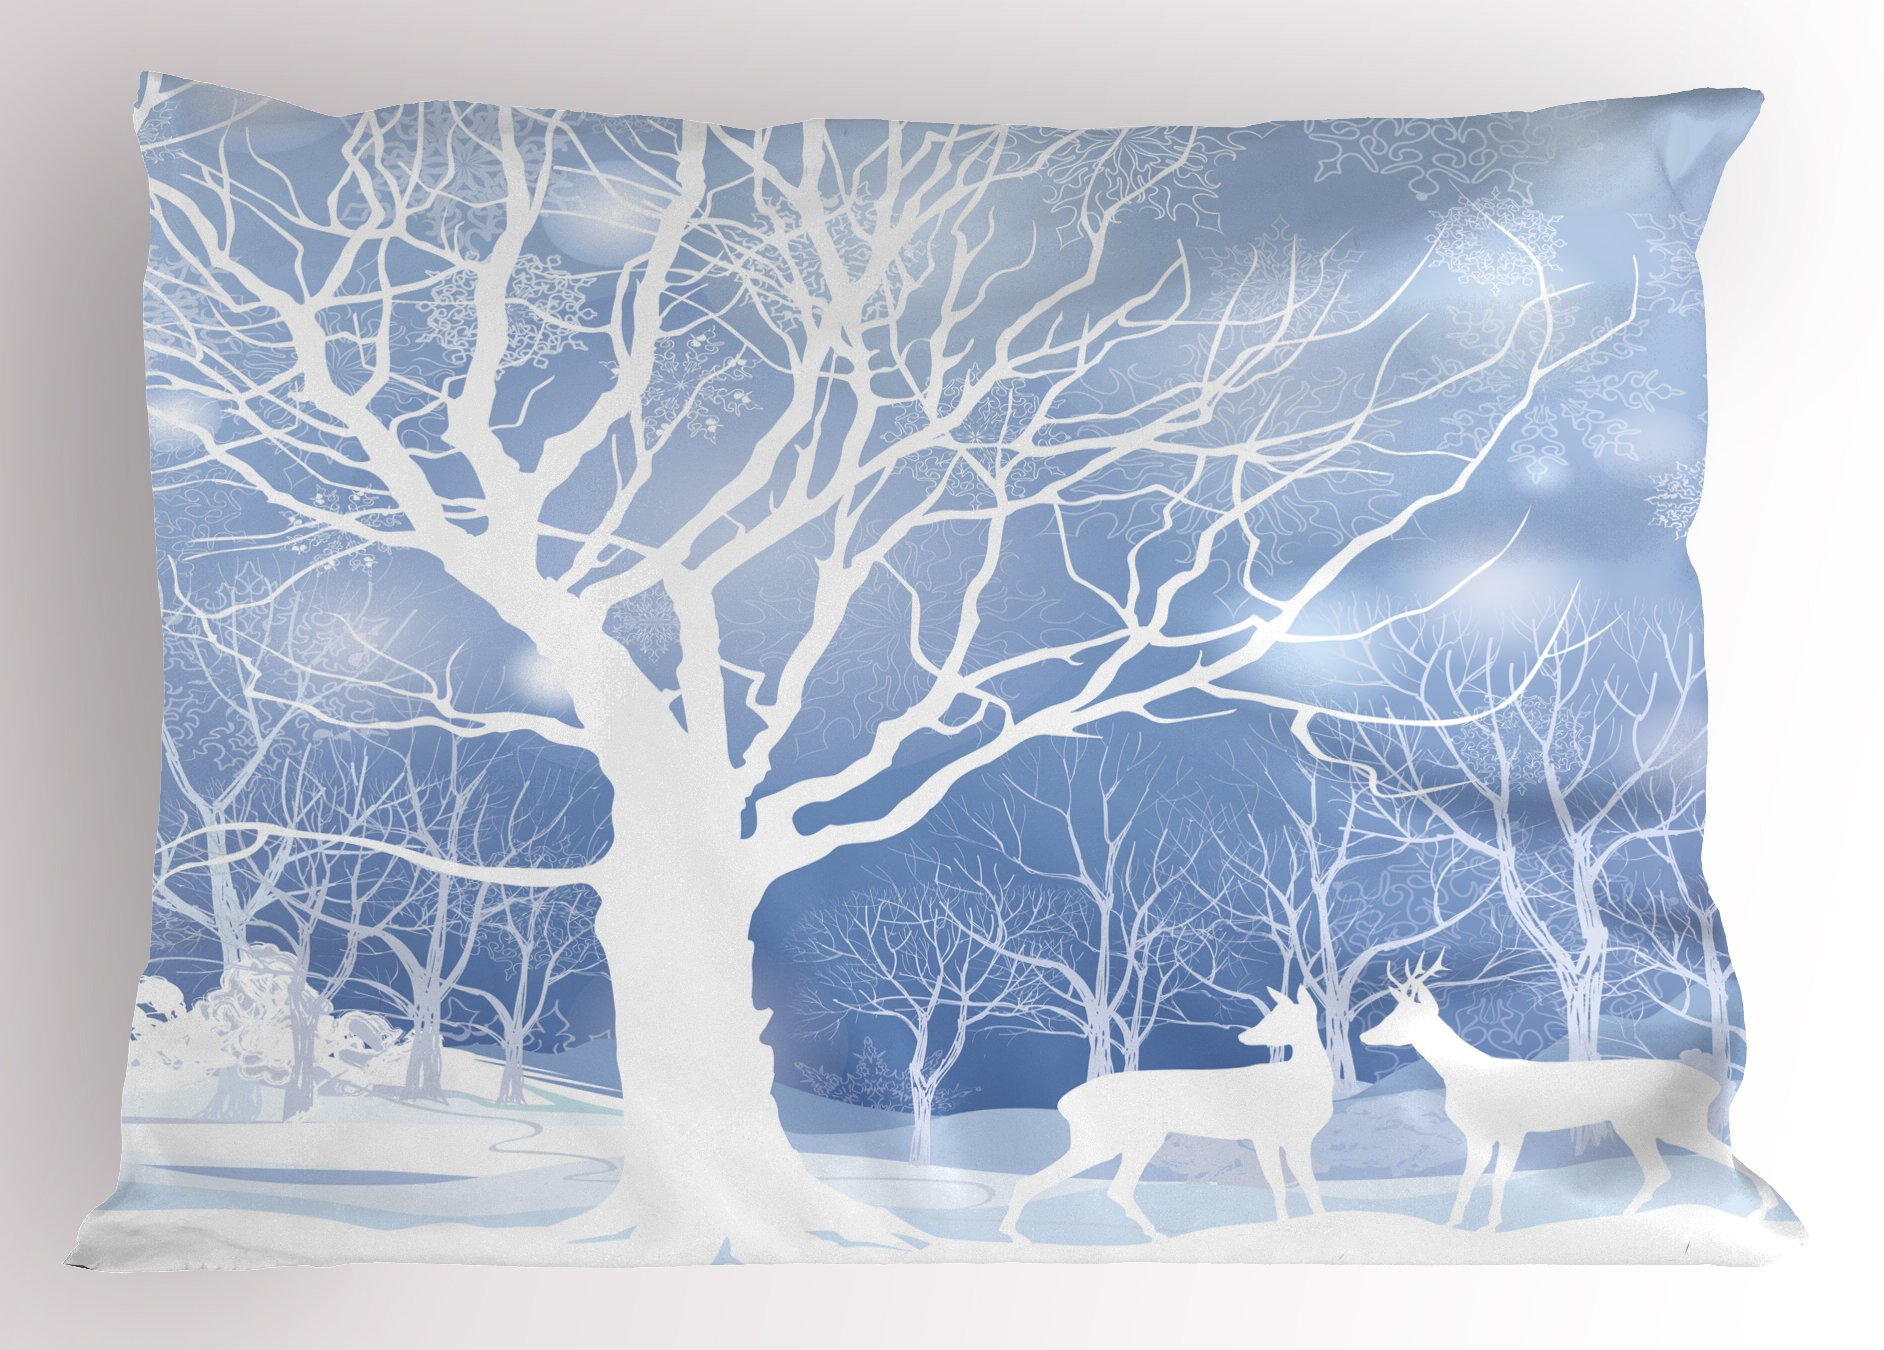 Ambesonne Winter Pillow Sham, Abstract Winter Imagery with Snowy Weather Deer and Other Animals Seasonal Theme, Decorative Standard King Size Printed Pillowcase, 36 X 20 inches,